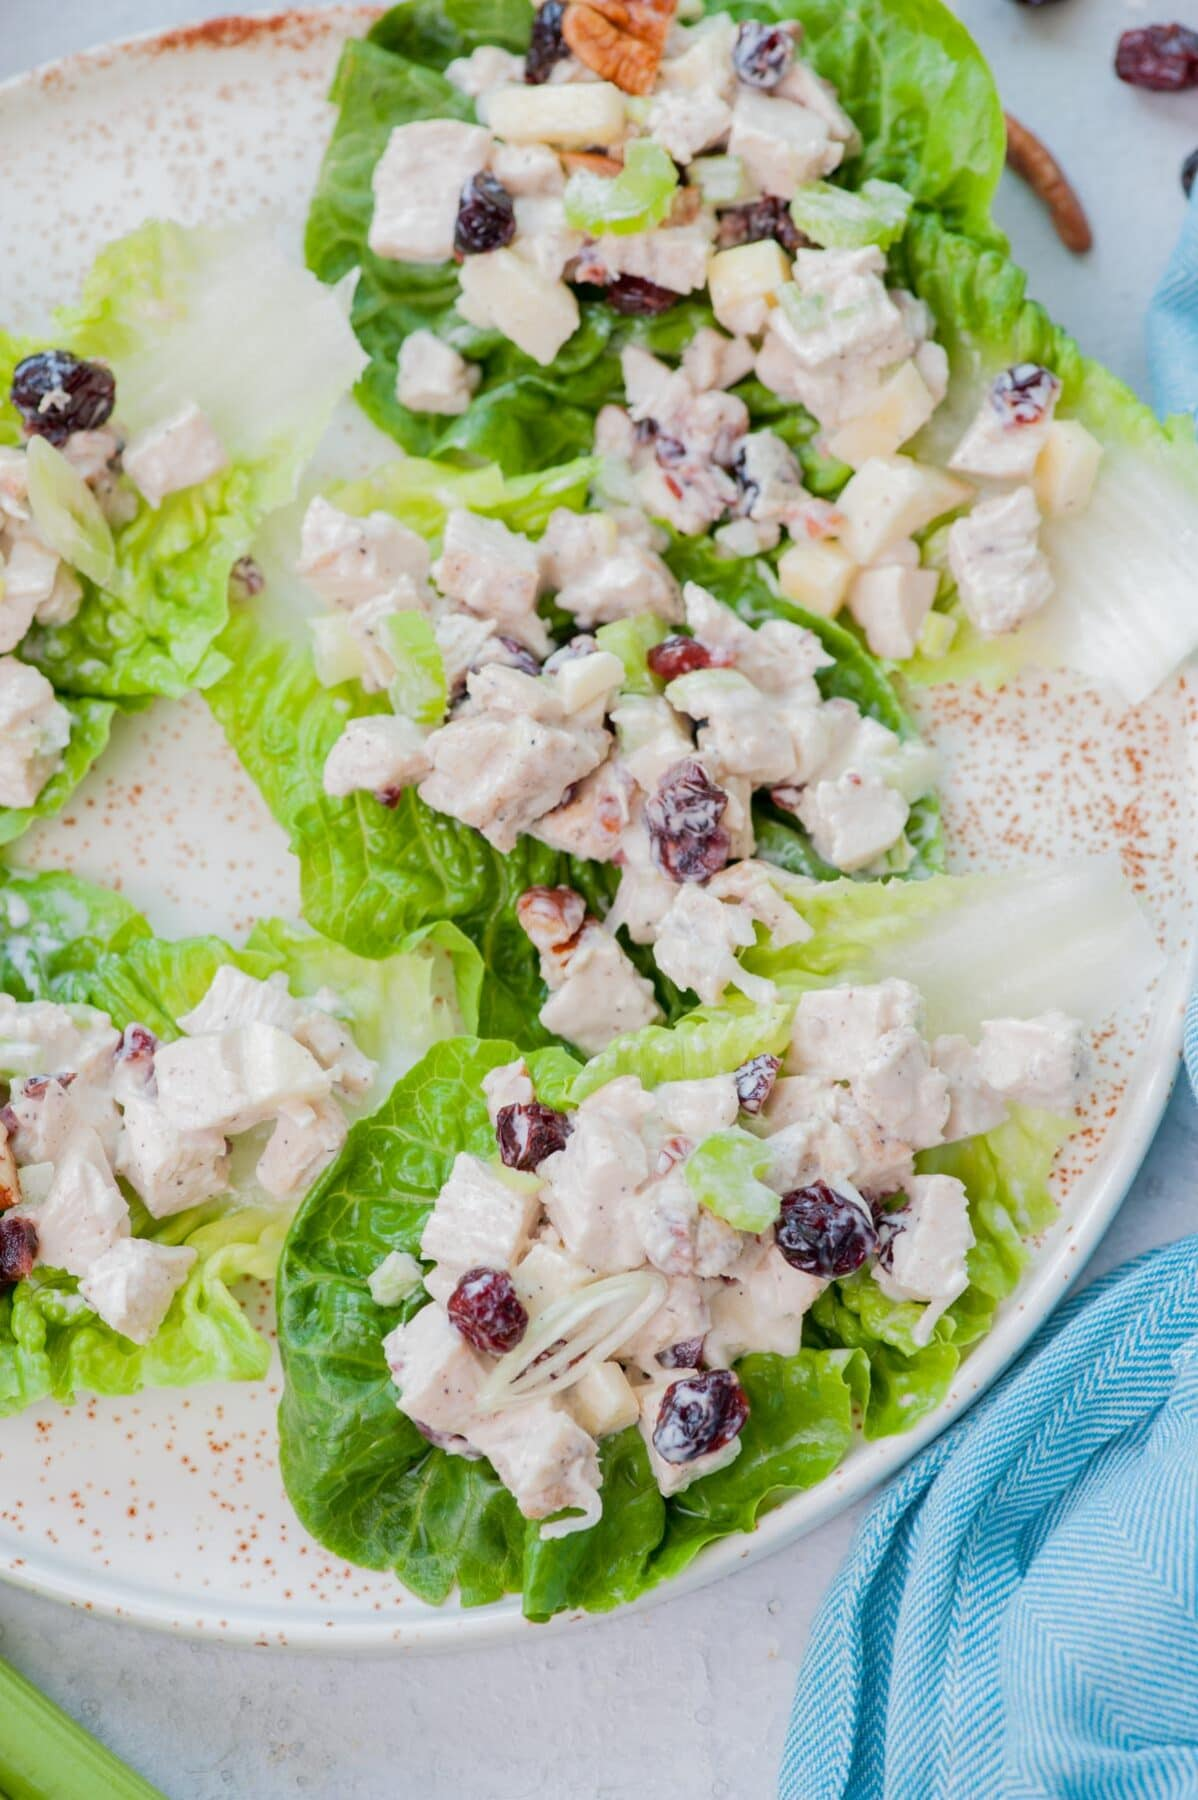 Cranberry chicken salad on lettuce leaves on a white plate.